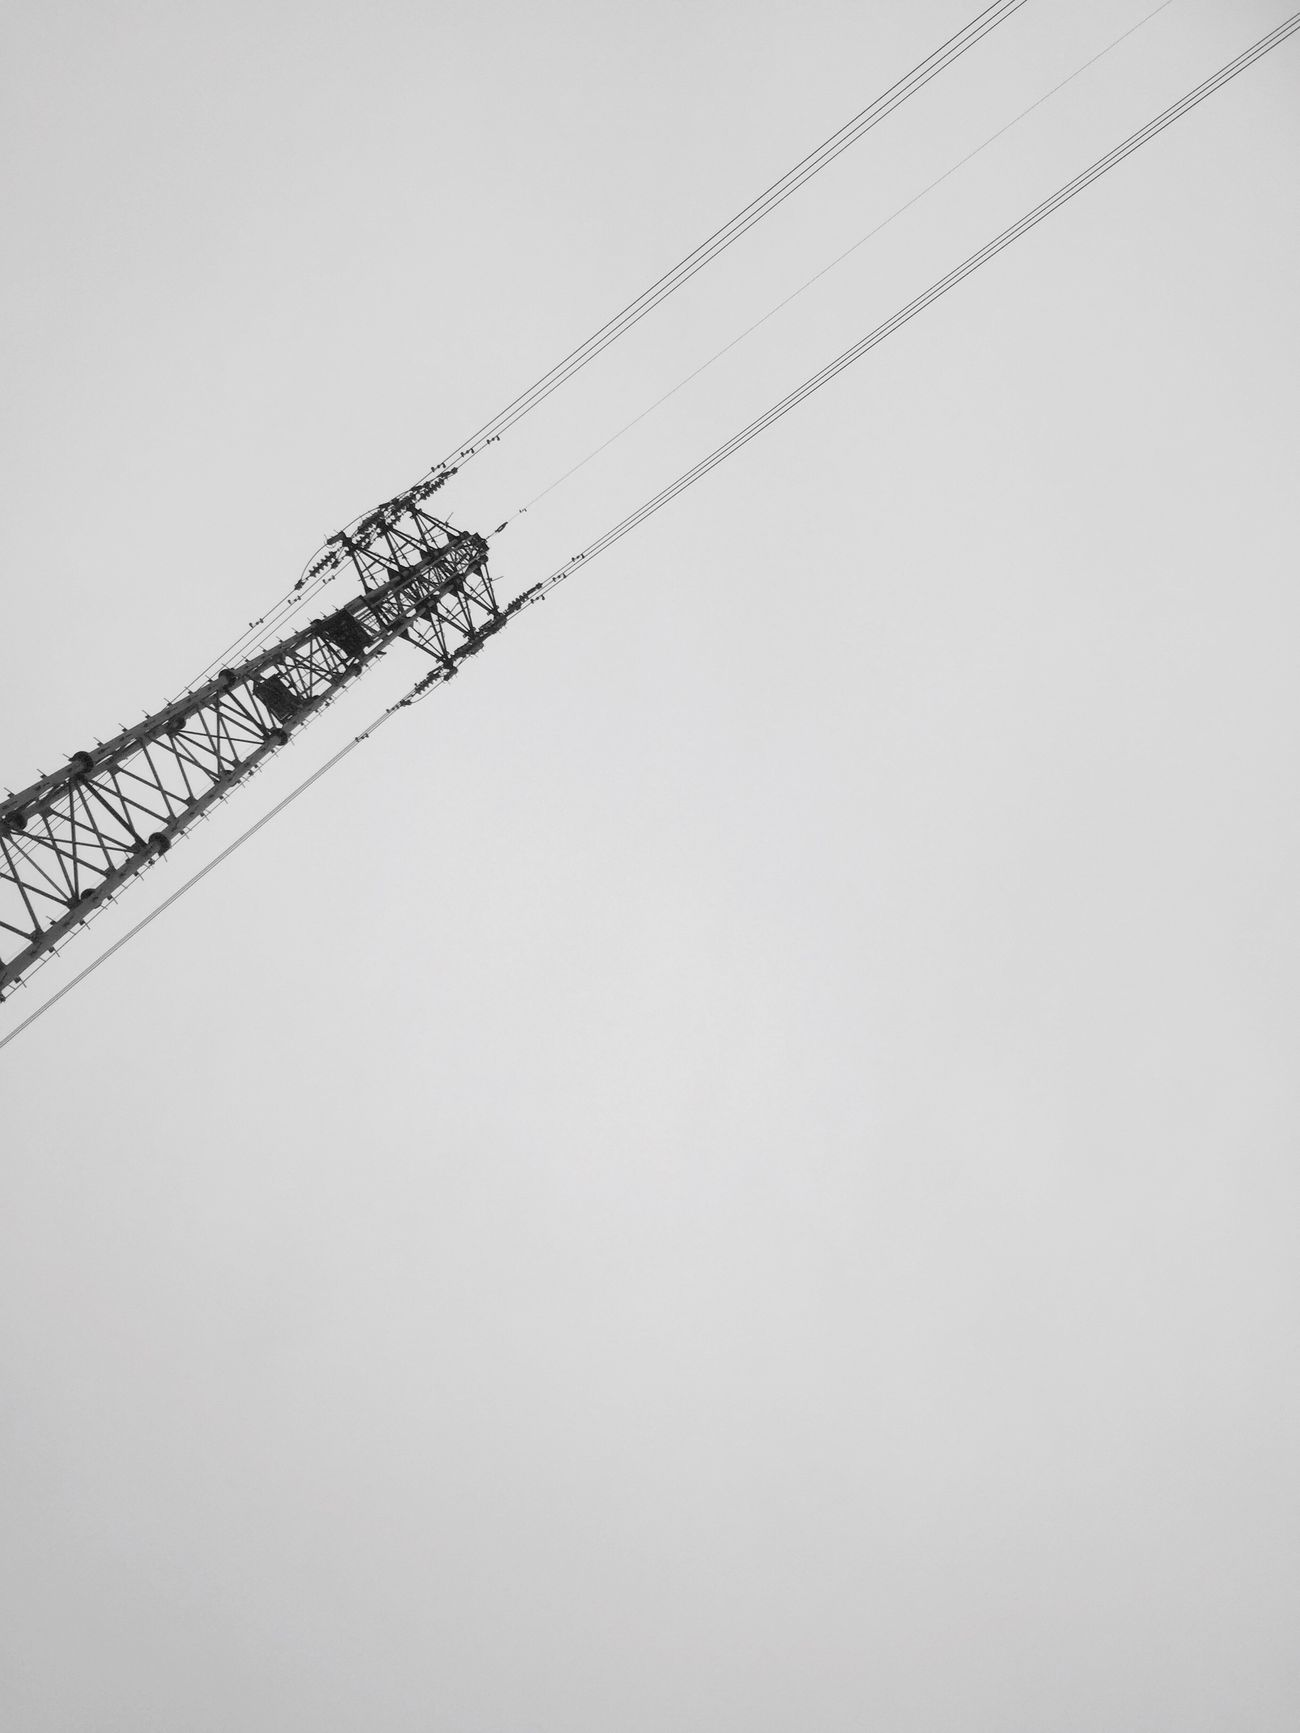 Copy Space Clear Sky Low Angle View Electricity  No People Cable Industry Power Supply Silhouette Sky Connection Iron - Metal Outdoors Electricity Pylon Day